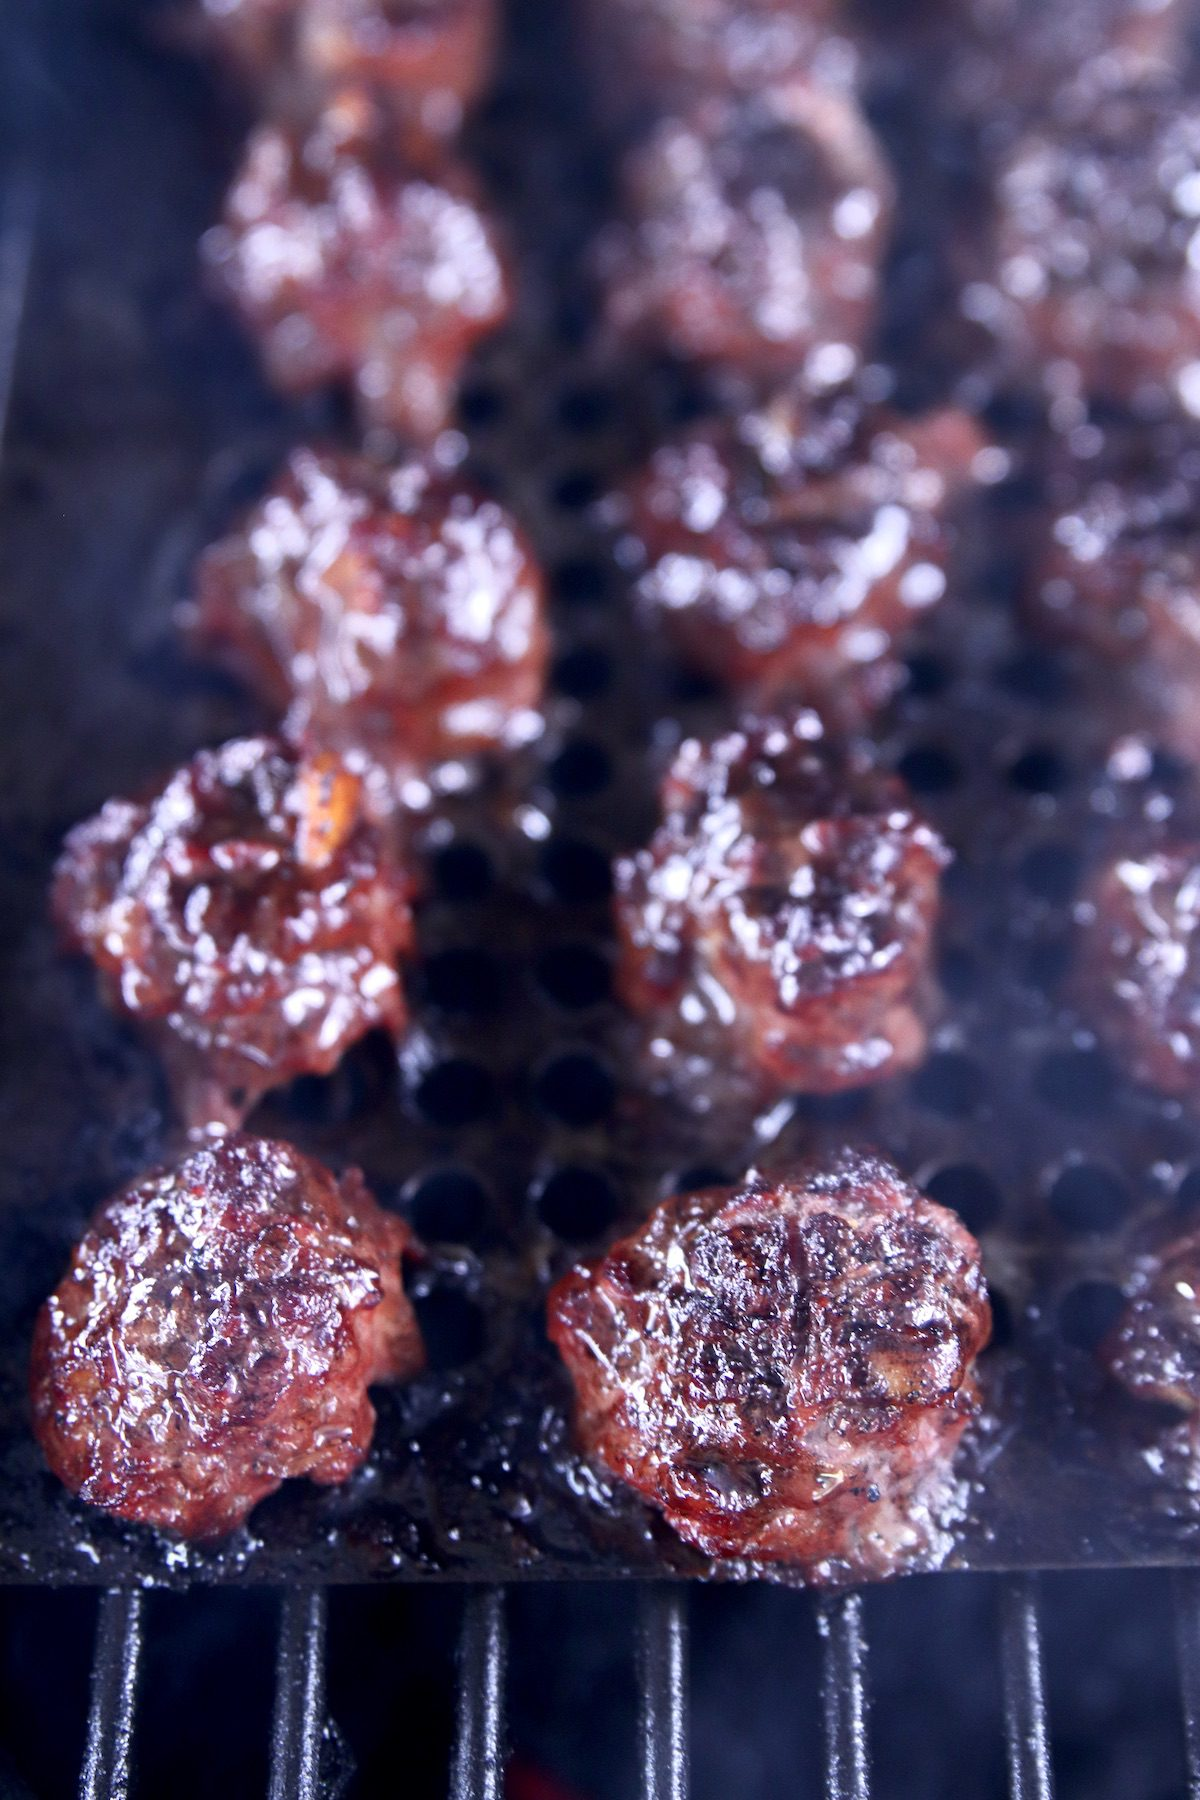 up close grilled meatballs